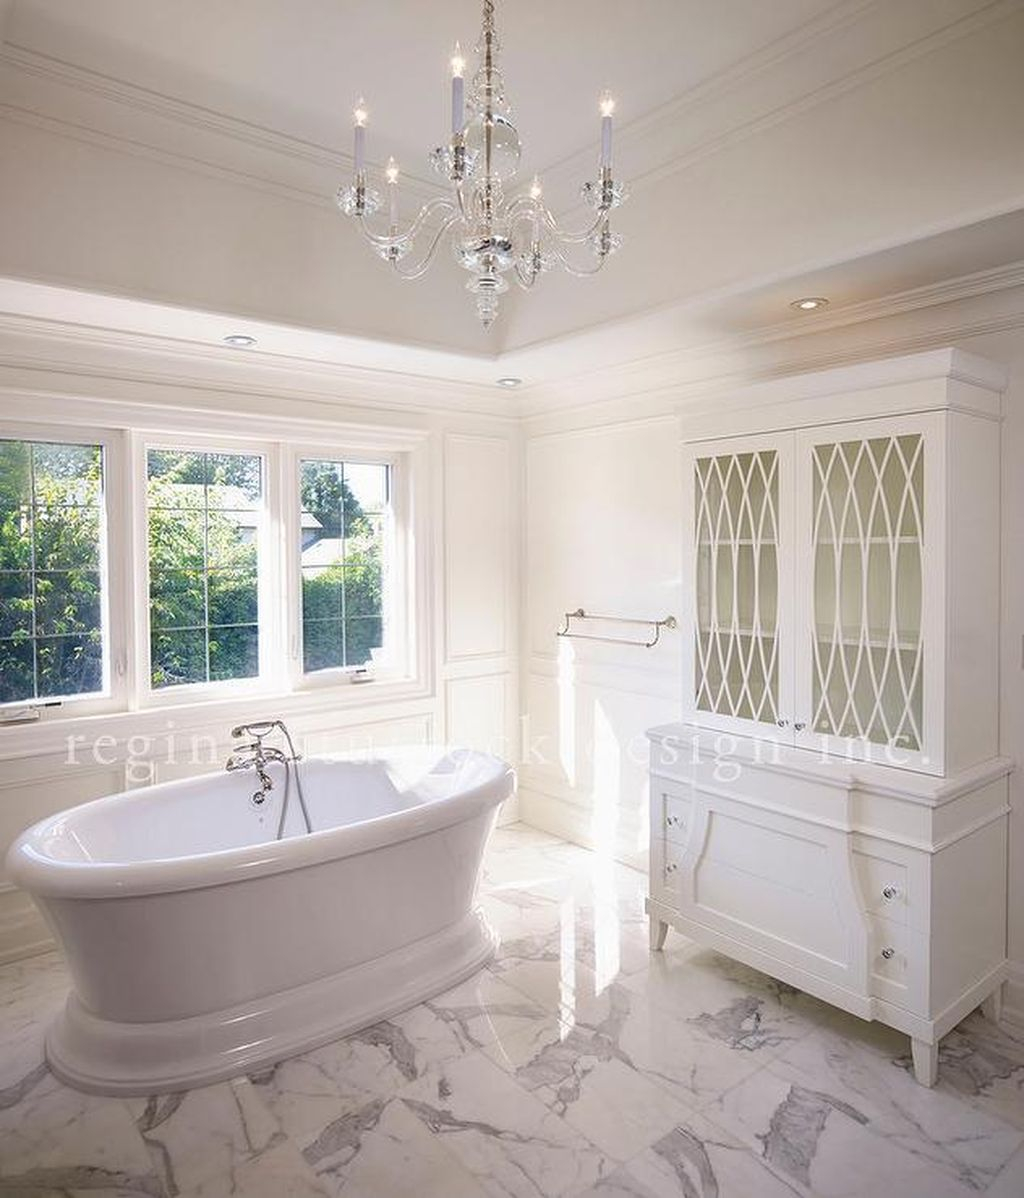 Romantic And Elegant Bathroom Design Ideas With Chandeliers 87 Homedecorish